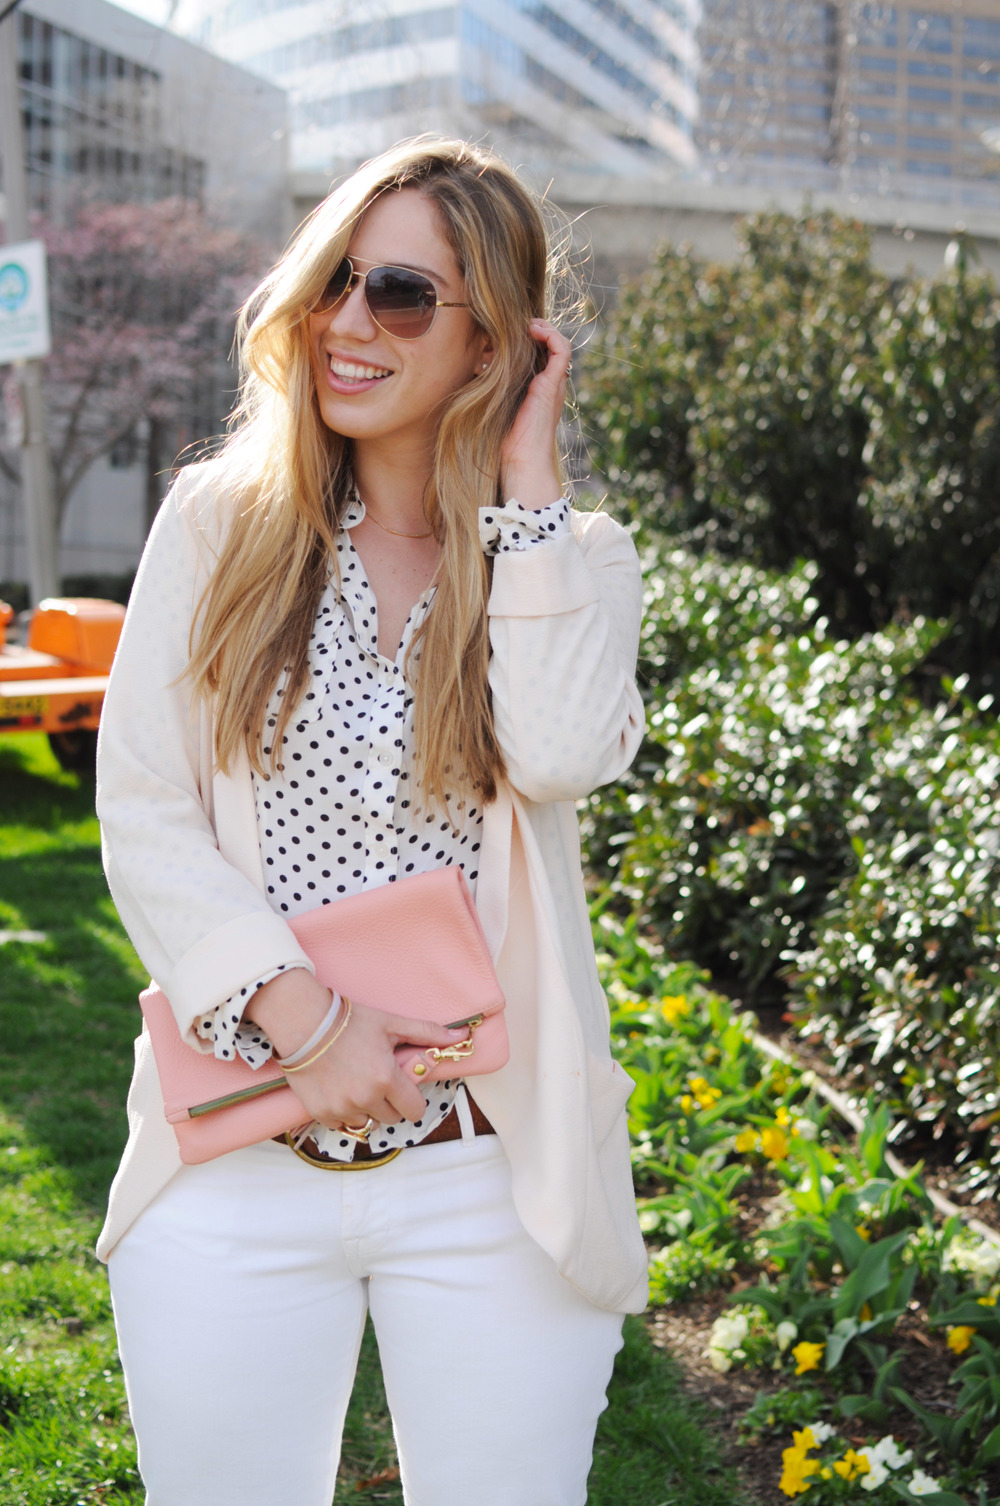 See full outfit post here!